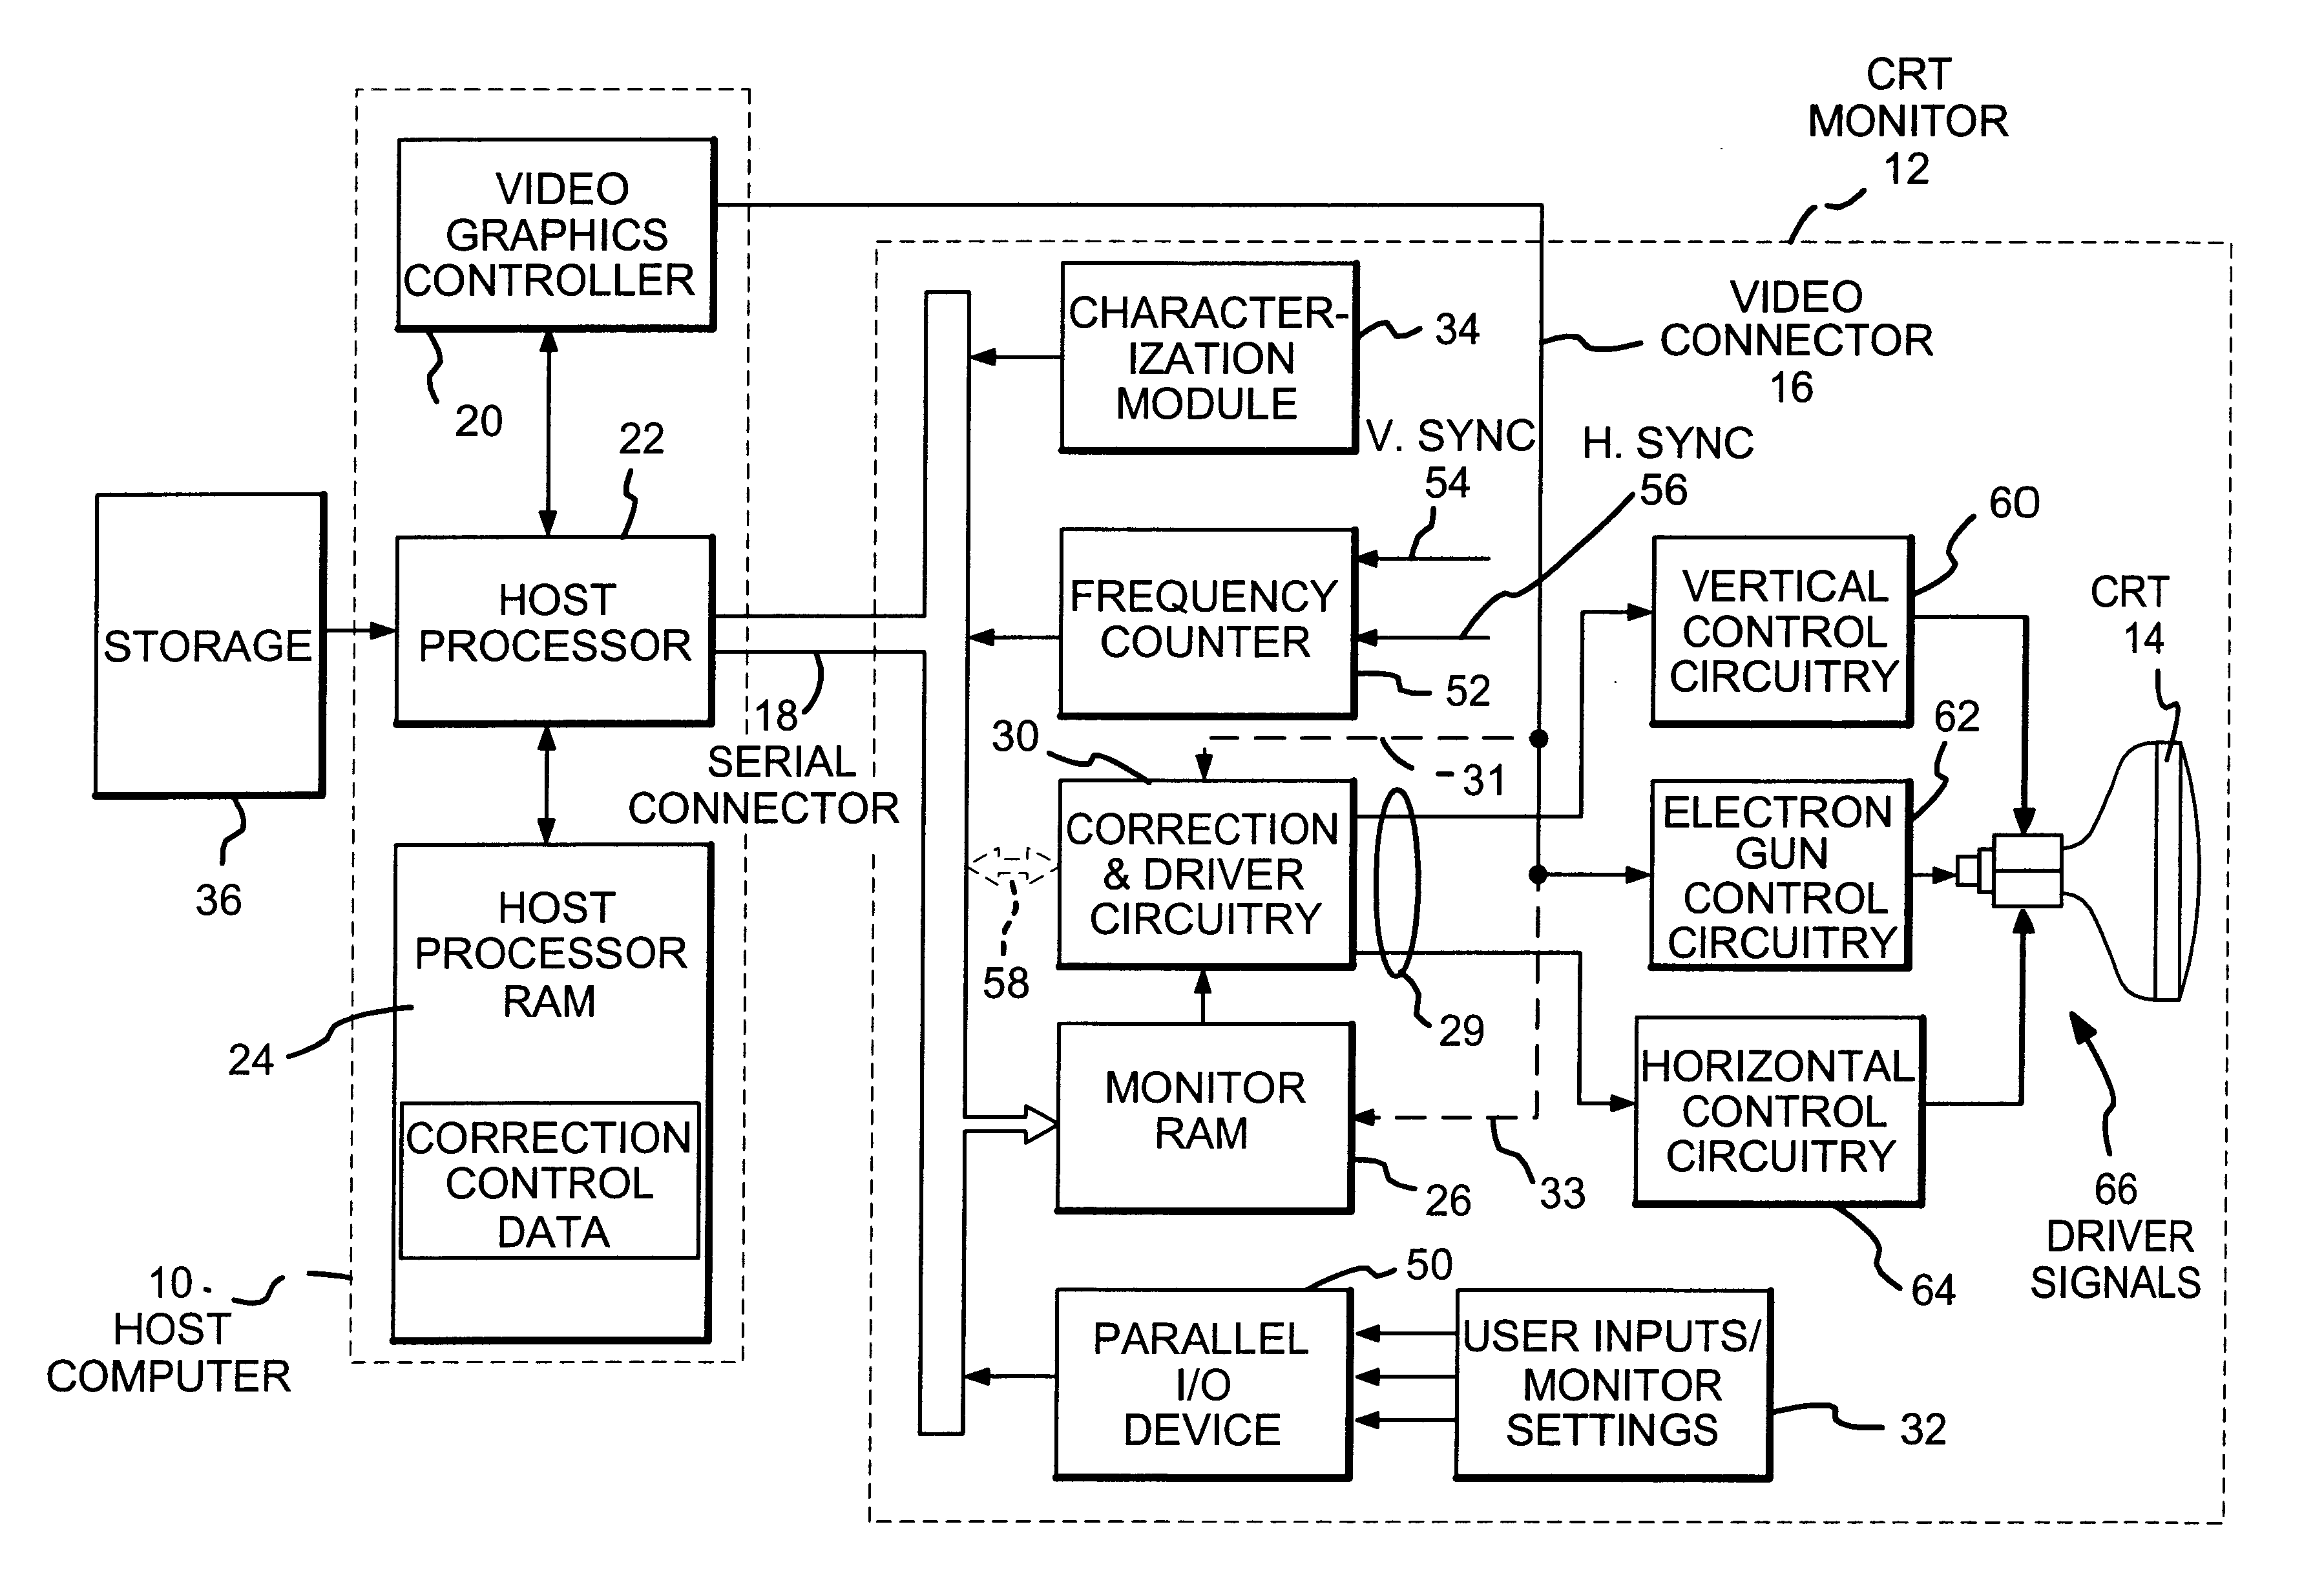 small resolution of crt wiring diagram wiring diagram centre crt monitor wiring diagram component crt block diagram g6 electronics